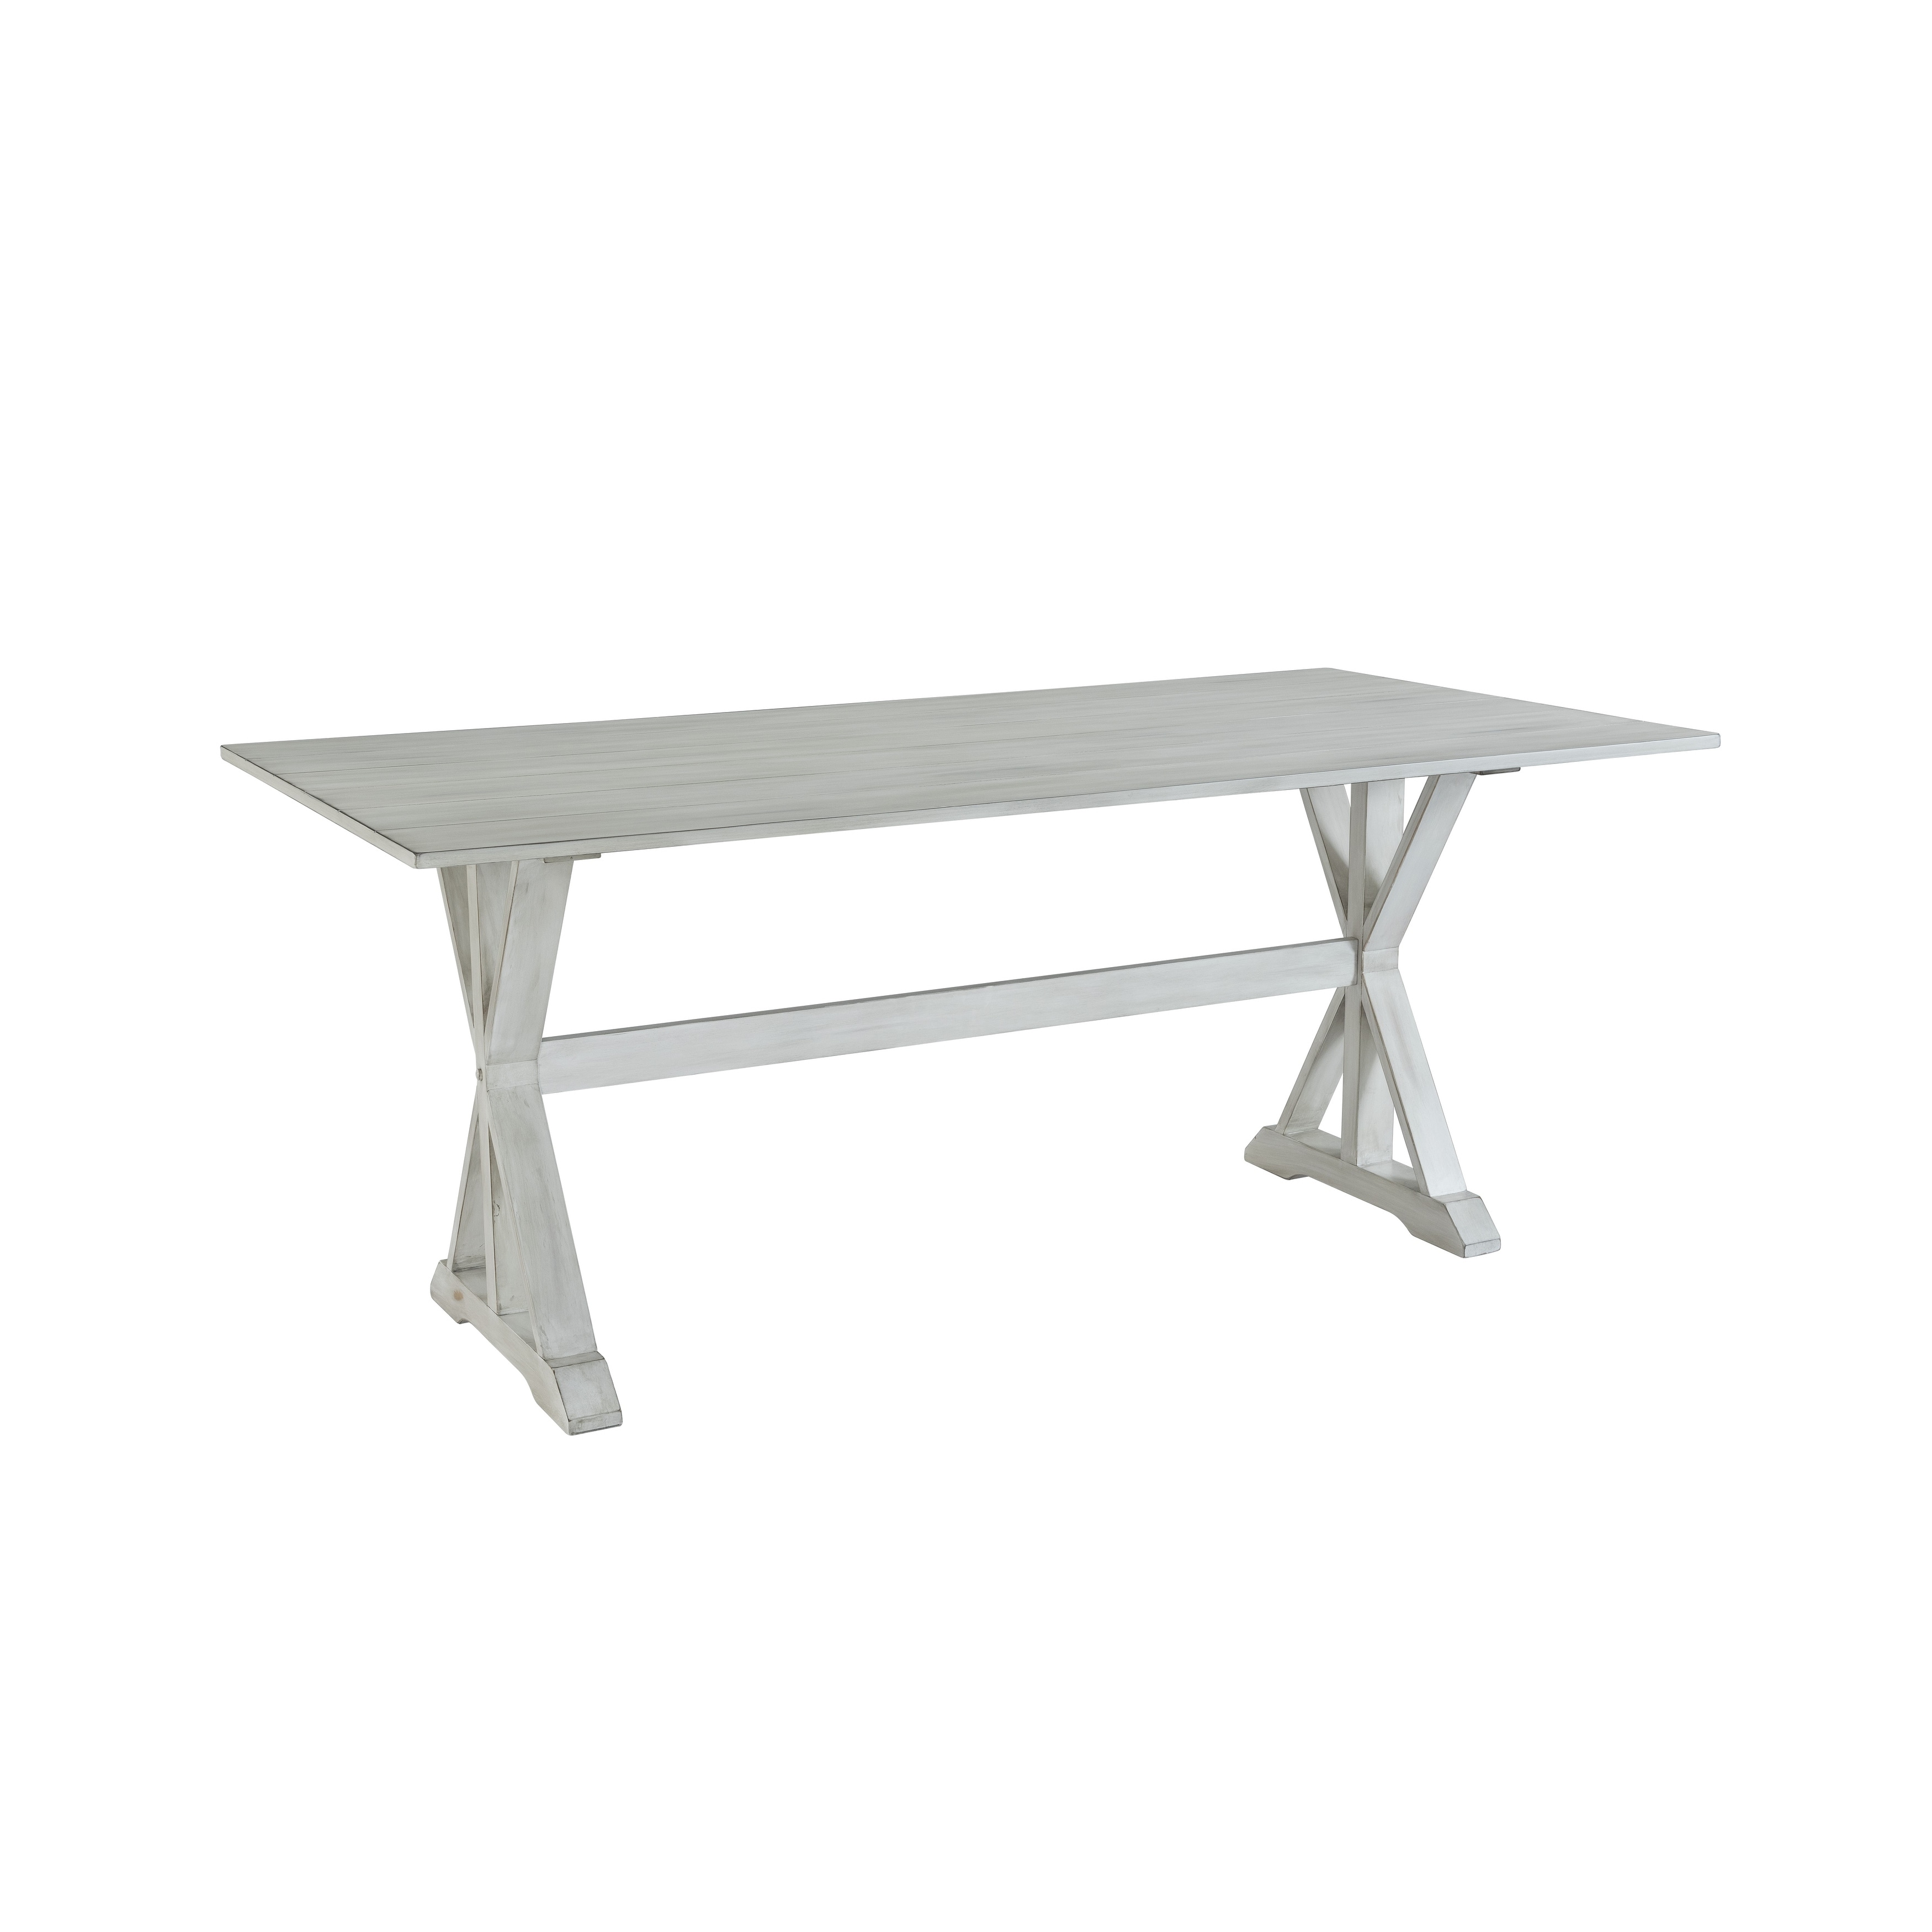 Farmhouse Distressed White Trestle Dining Table